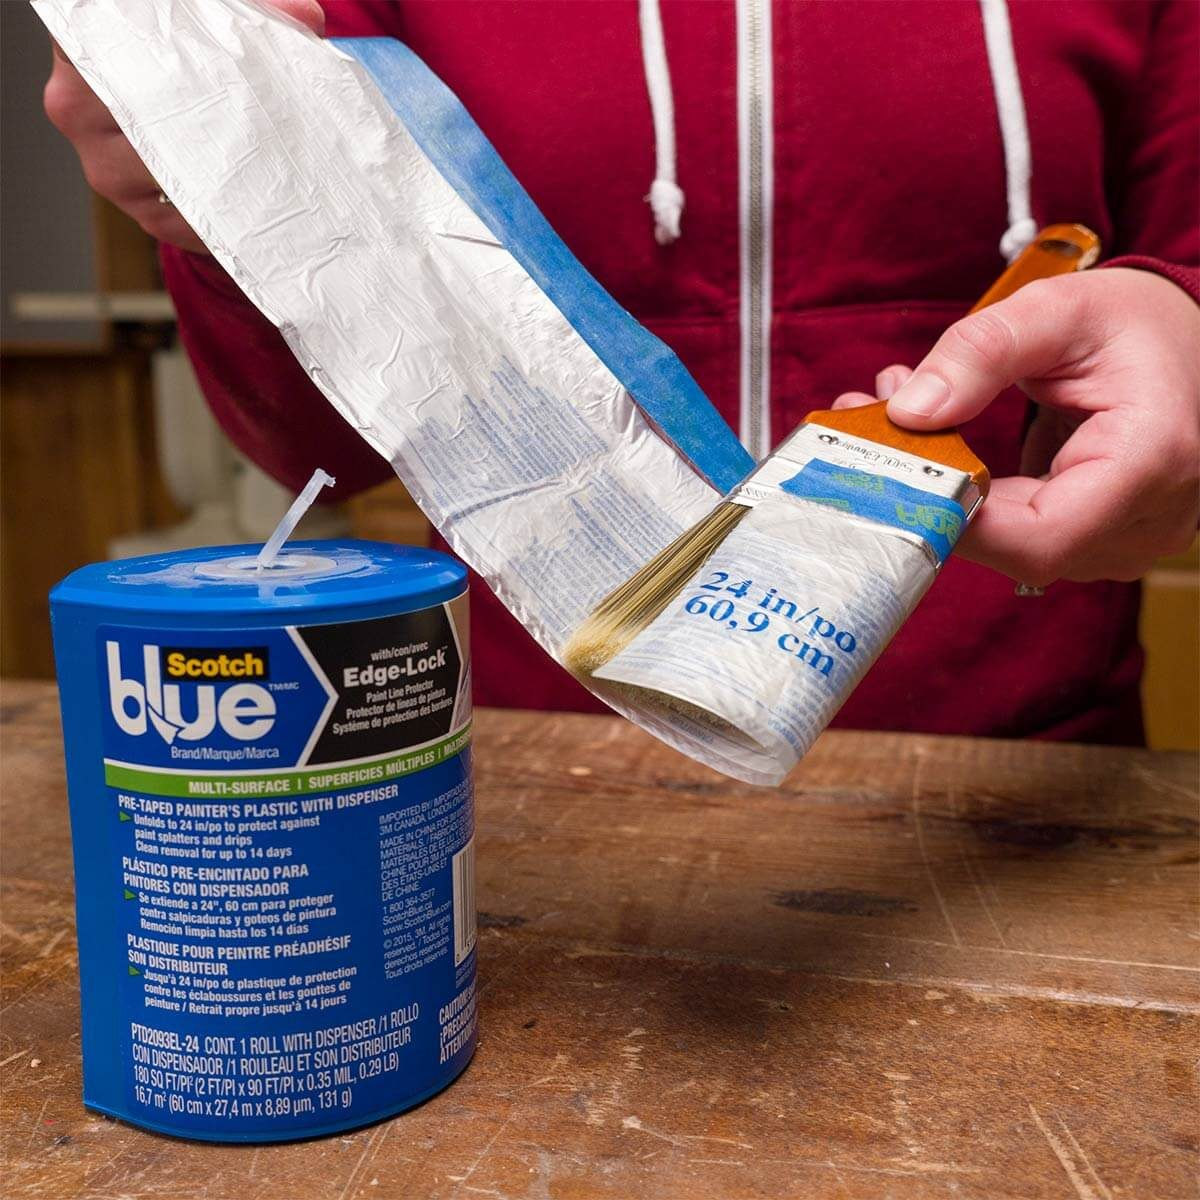 pre-taped plastic to protect paintbrushes